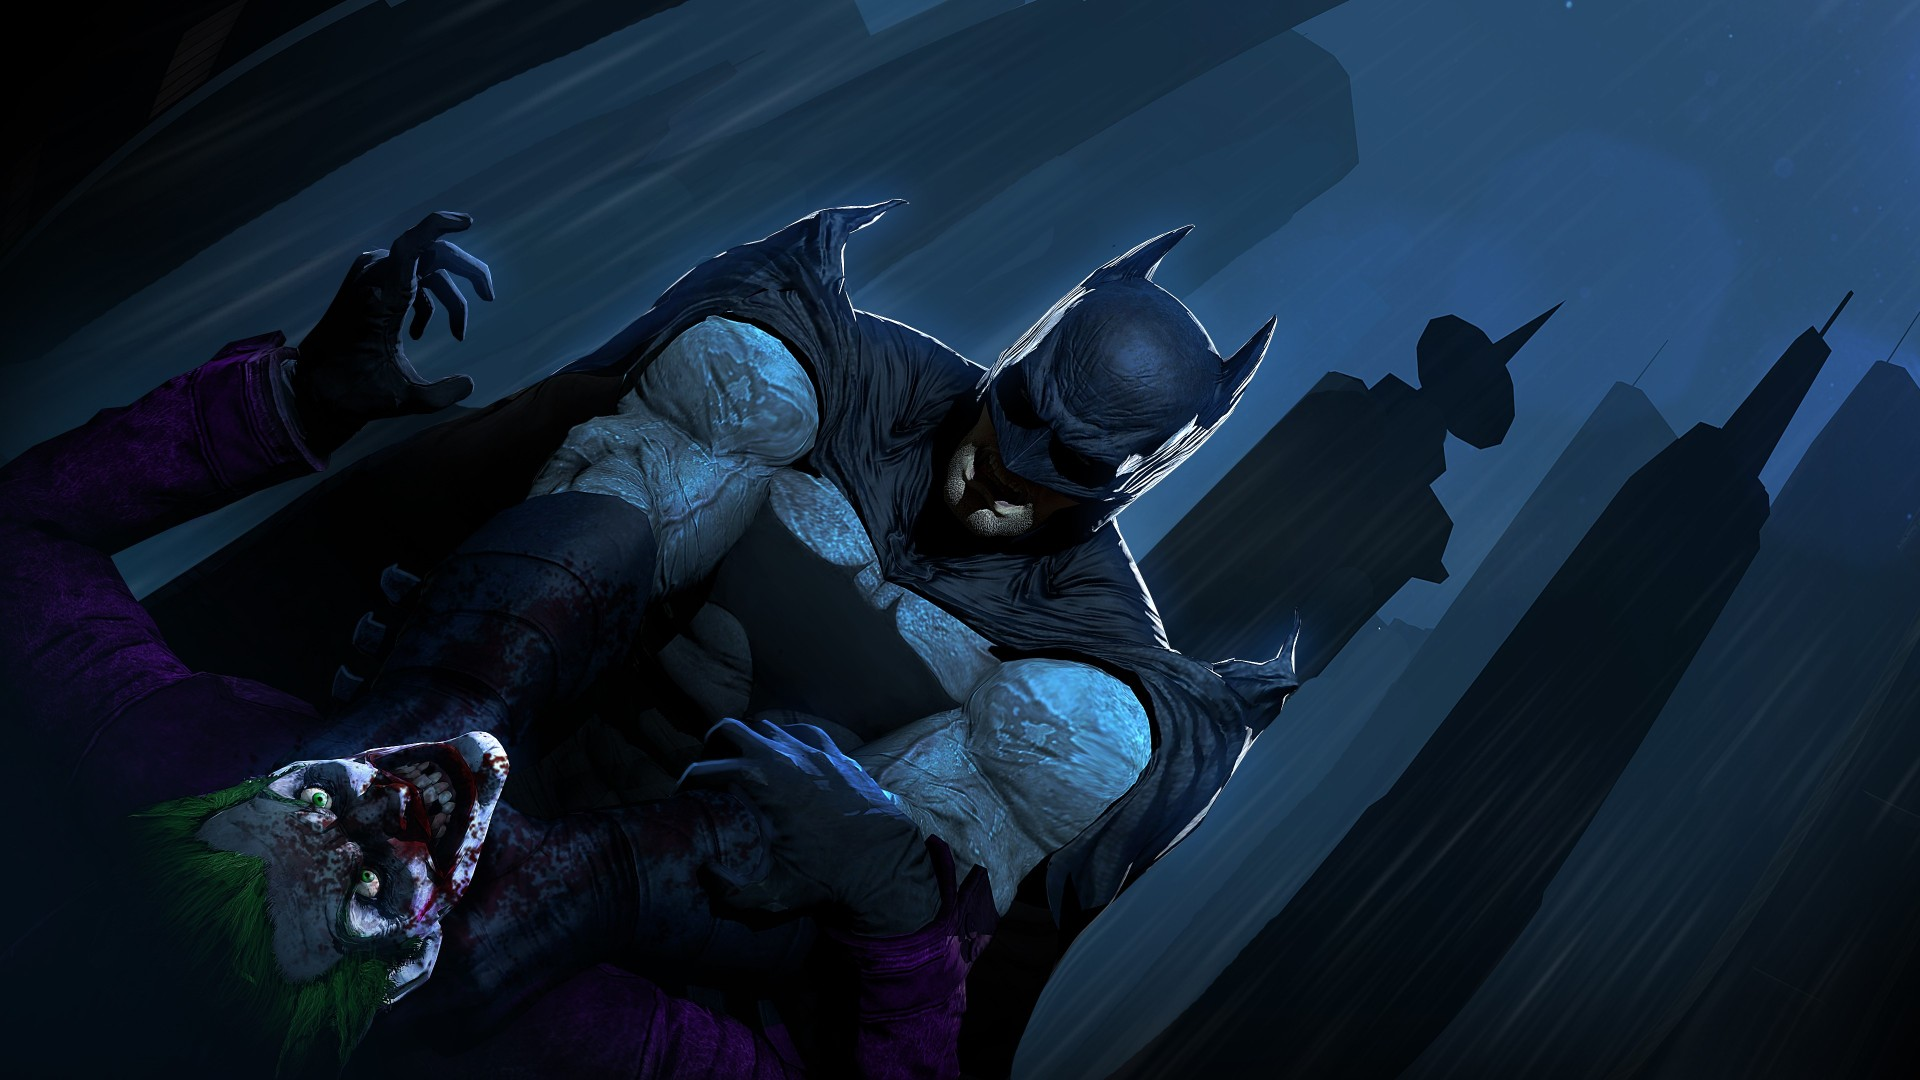 Download Free 3d Wallpapers For Windows 8 Batman Vs Joker 4k Wallpapers Hd Wallpapers Id 25018